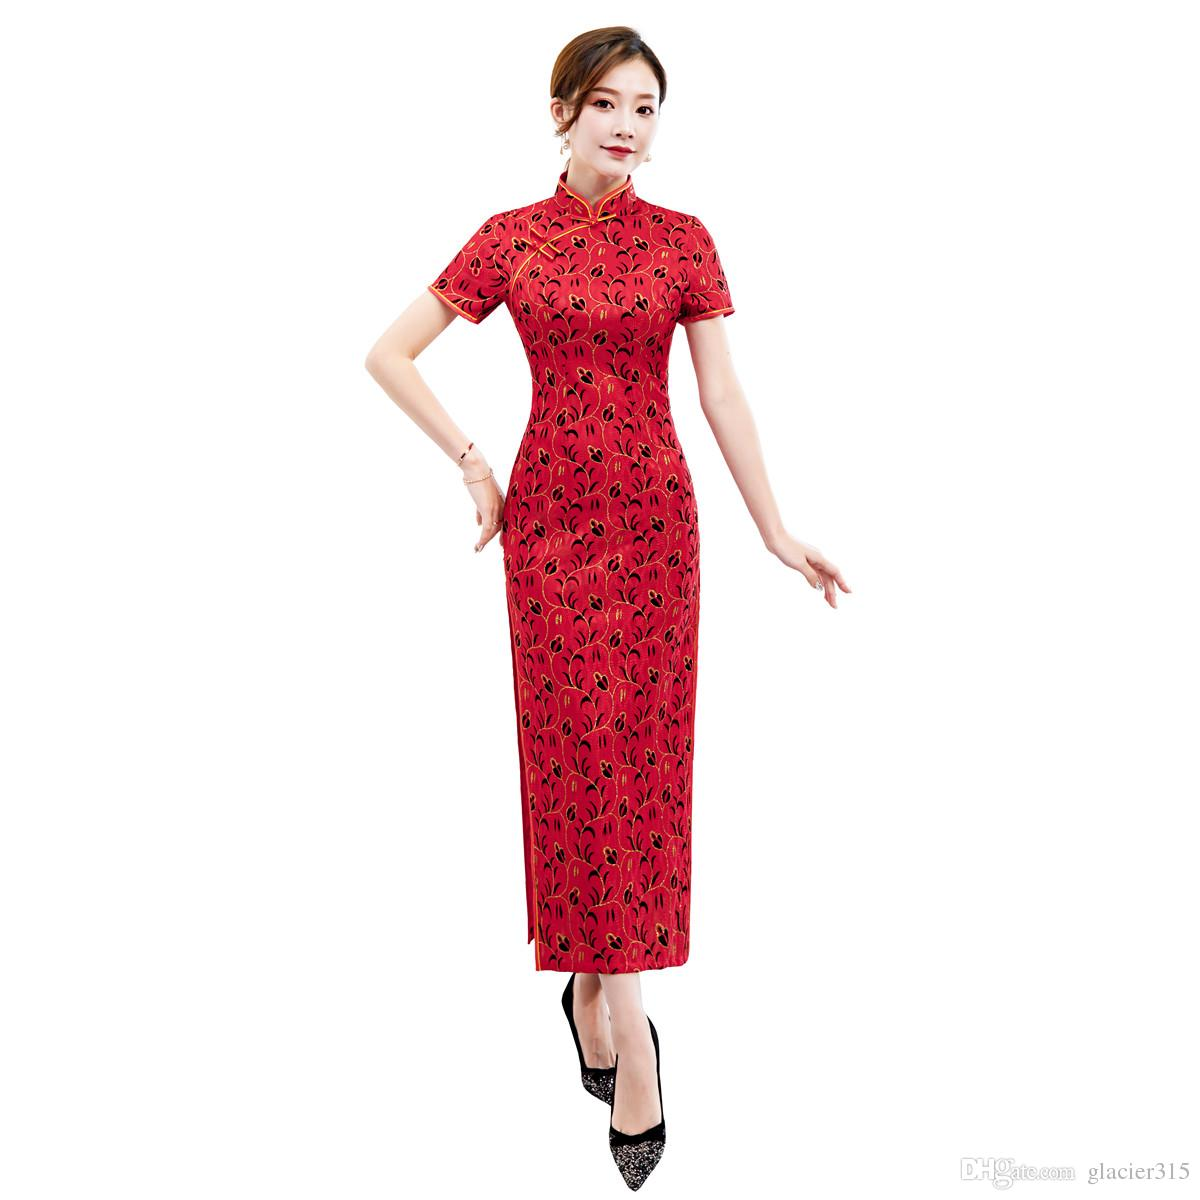 376cd567a Shanghai Story 2019 Top Quality Lace Qipao Chinese Traditional dress  Chinese Women's Clothing Vintage Cheongsam Long